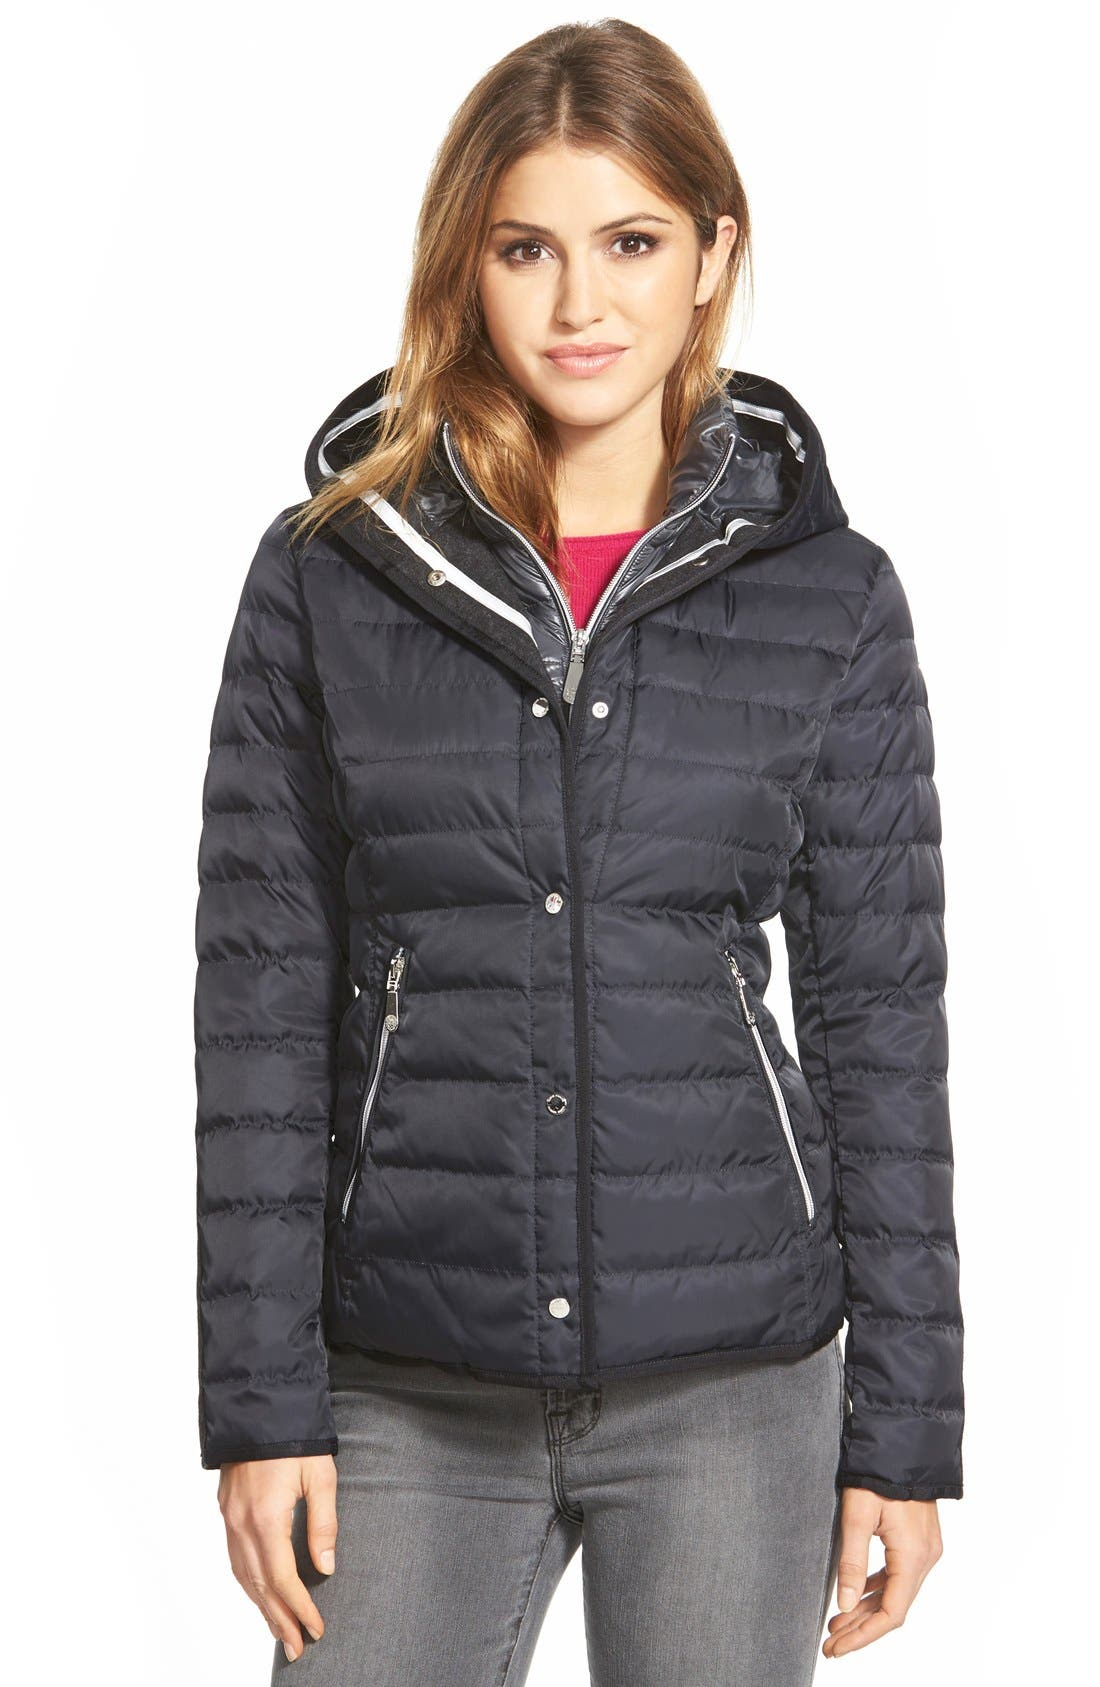 Alternate Image 1 Selected - Vince CamutoHooded Down Jacket with Vest Front Insert